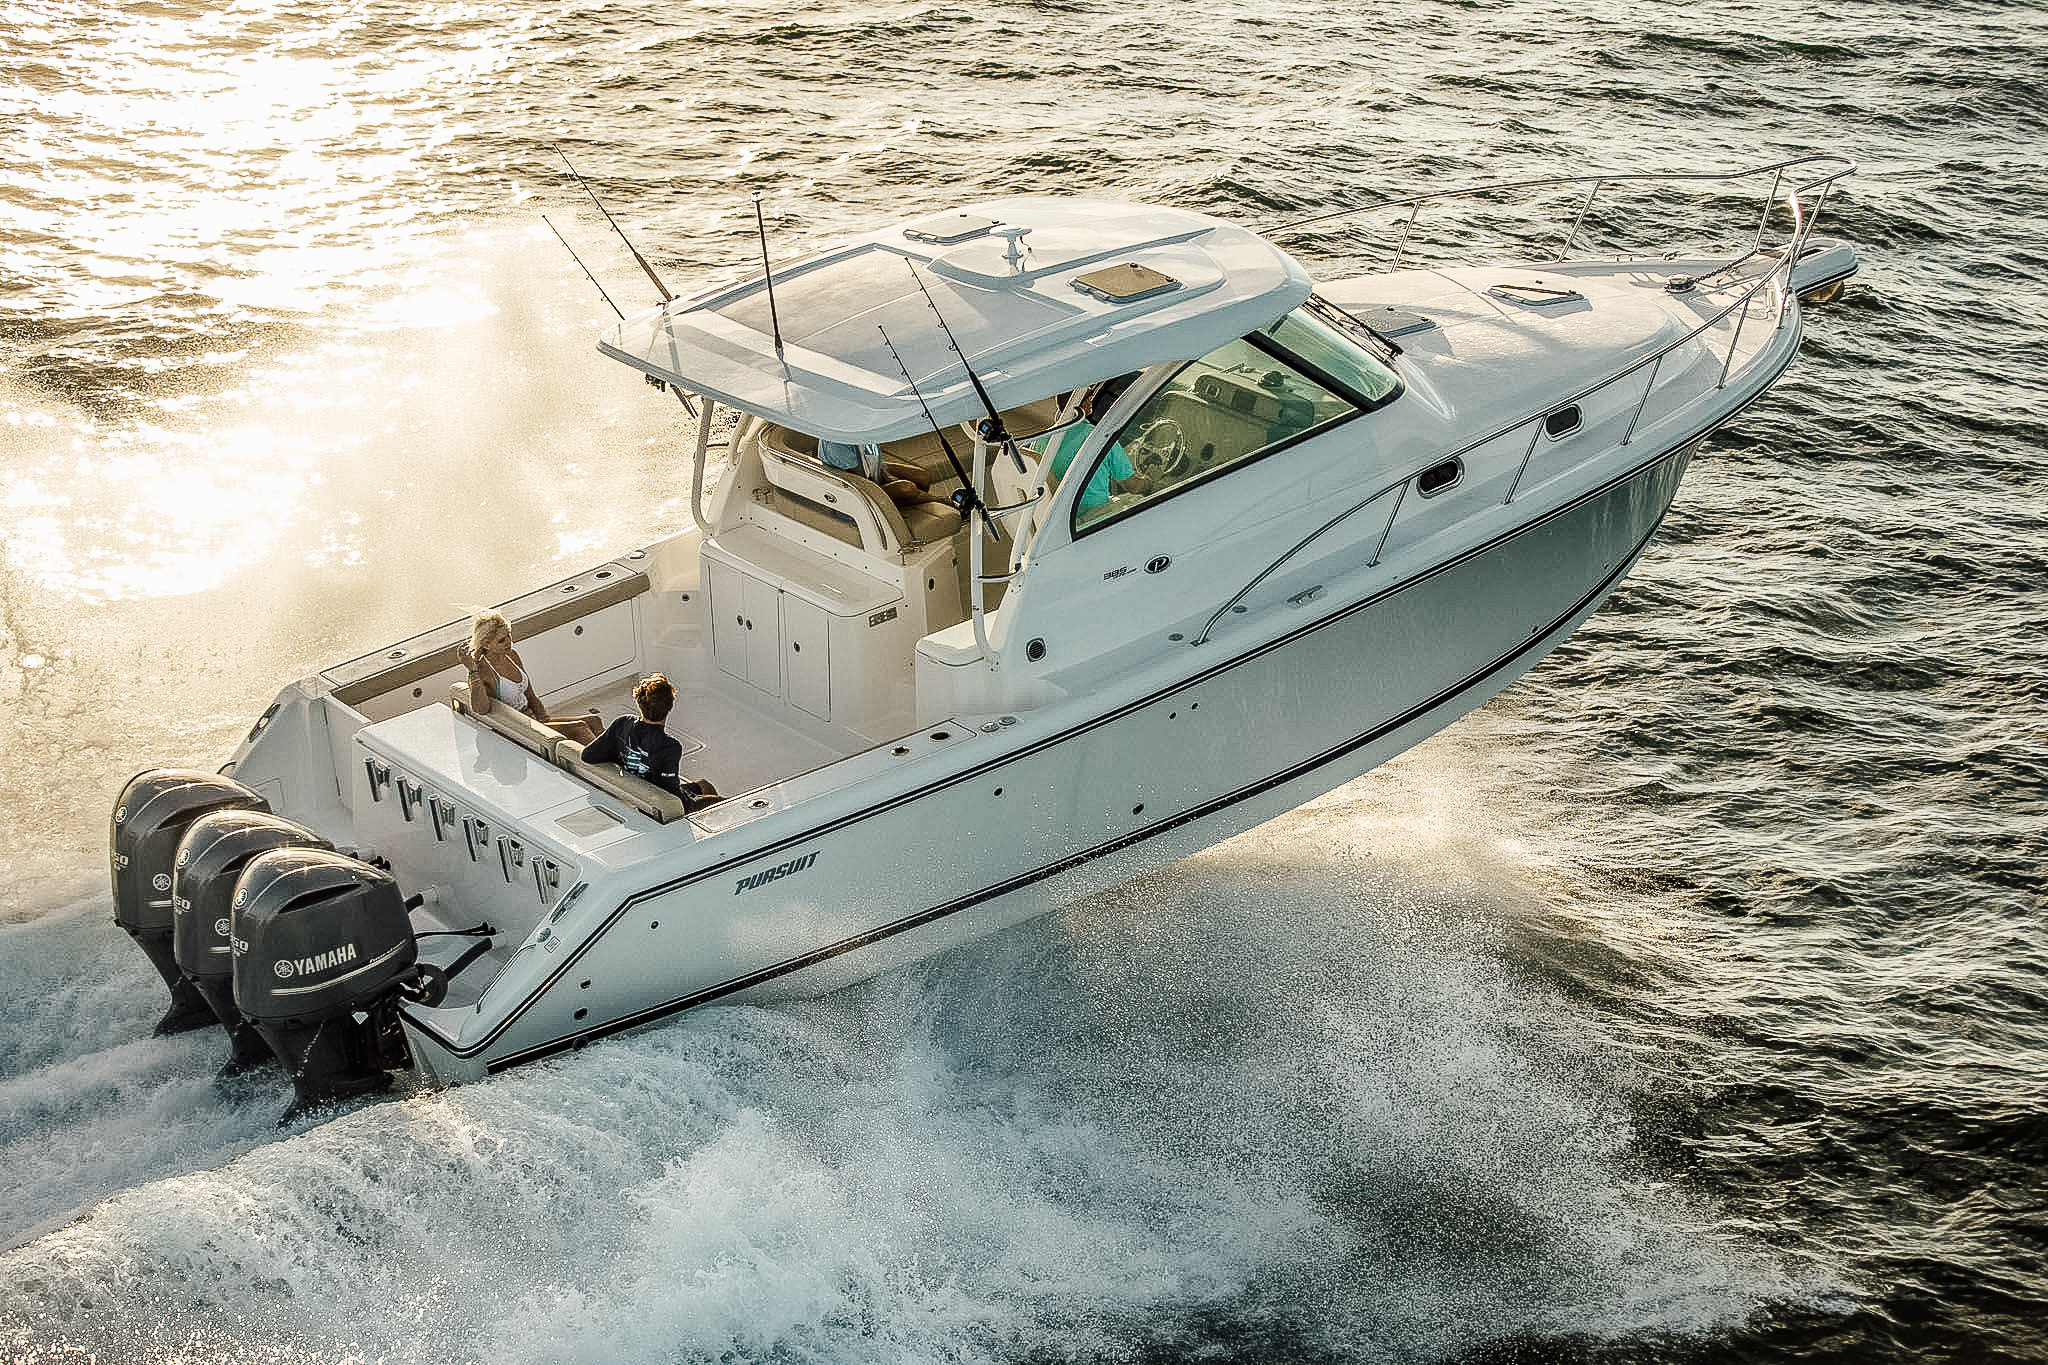 OFFSHORE - Pursuit delivers an exciting array of award winning offshore models. This product lineup delivers innovation and excellence that takes a winning formula to a new level.OS 385OS 355OS 325